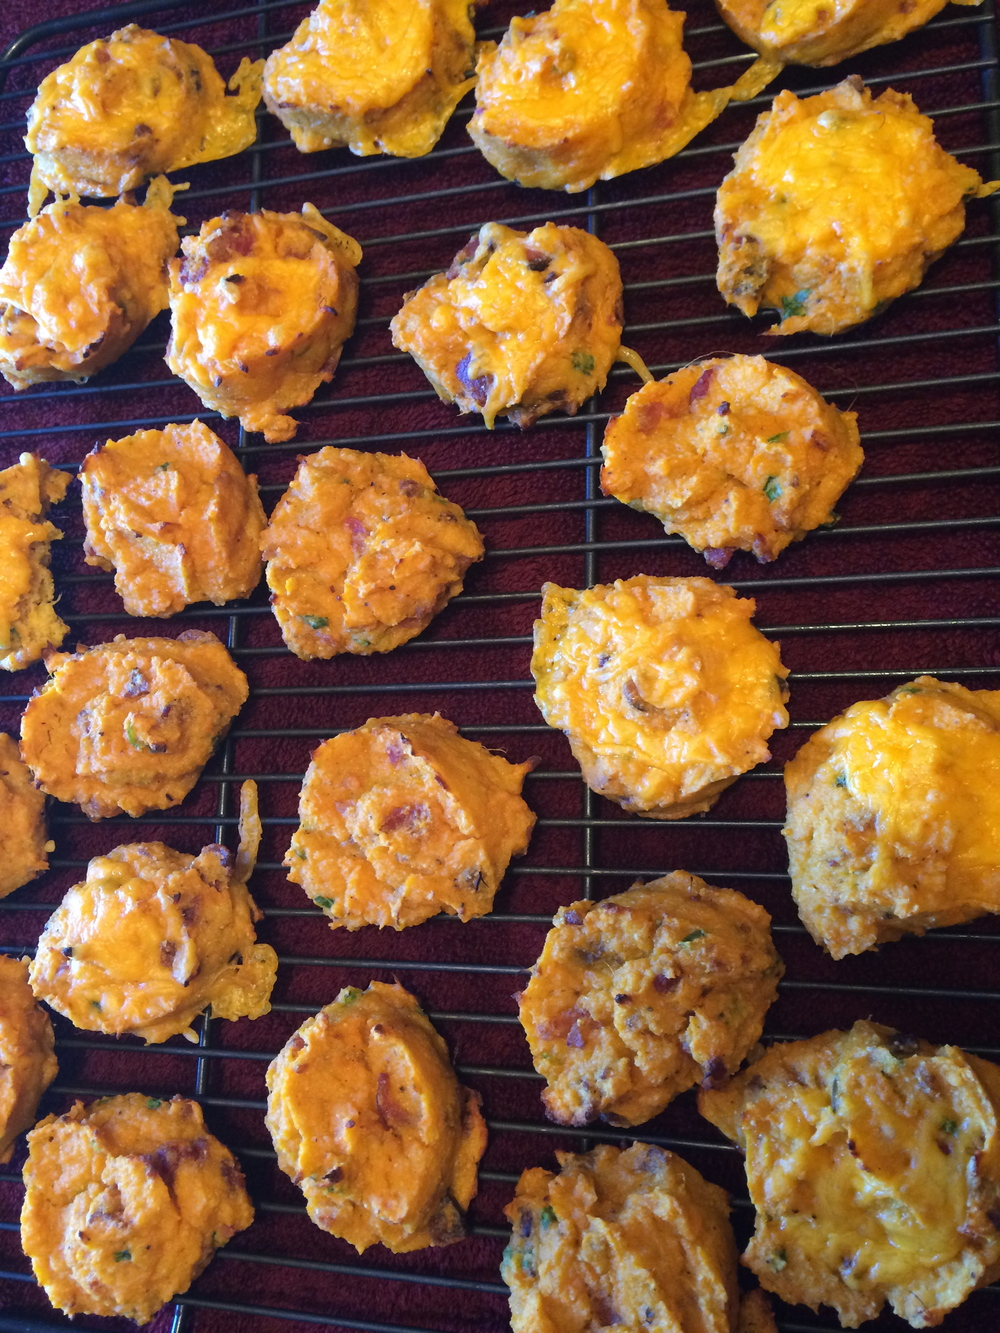 bacon and chive sweet potato biscuits were my addition to the thanksgiving spread last year, gluten free and paleo friendly